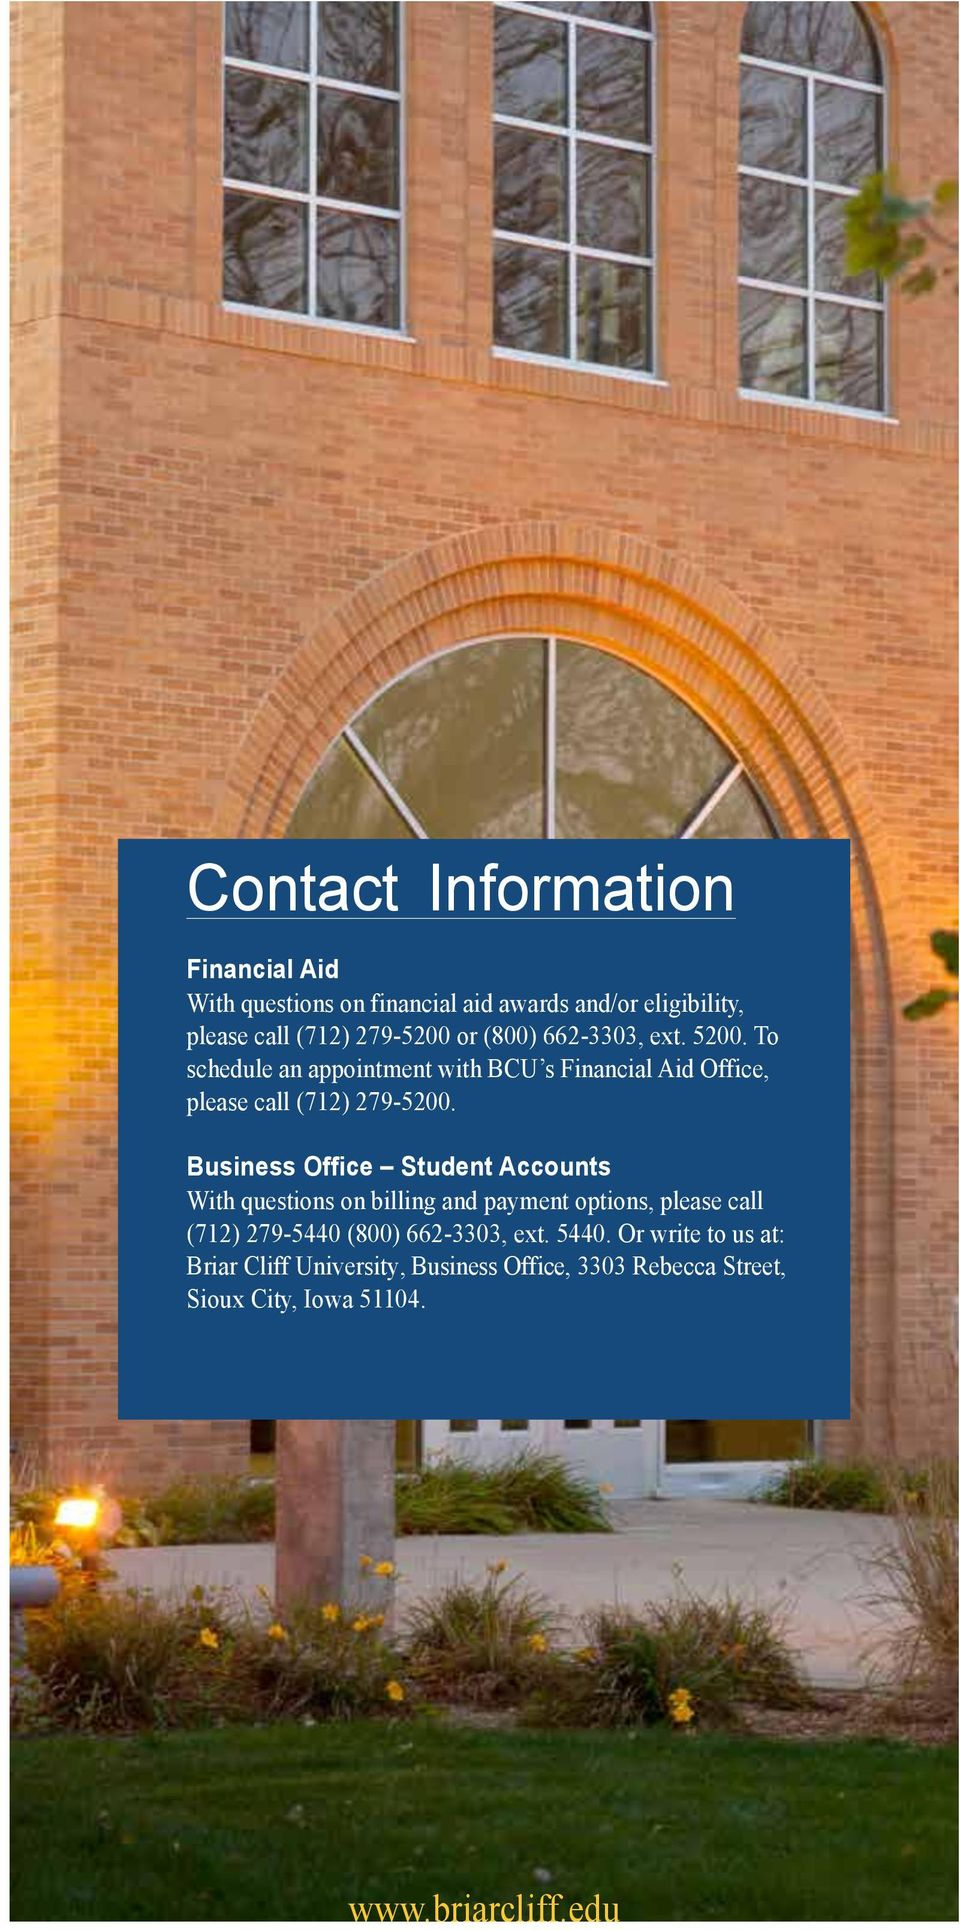 Business Office Student Accounts With questions on billing and payment options, please call (712) 279-5440 (800) 662-3303,